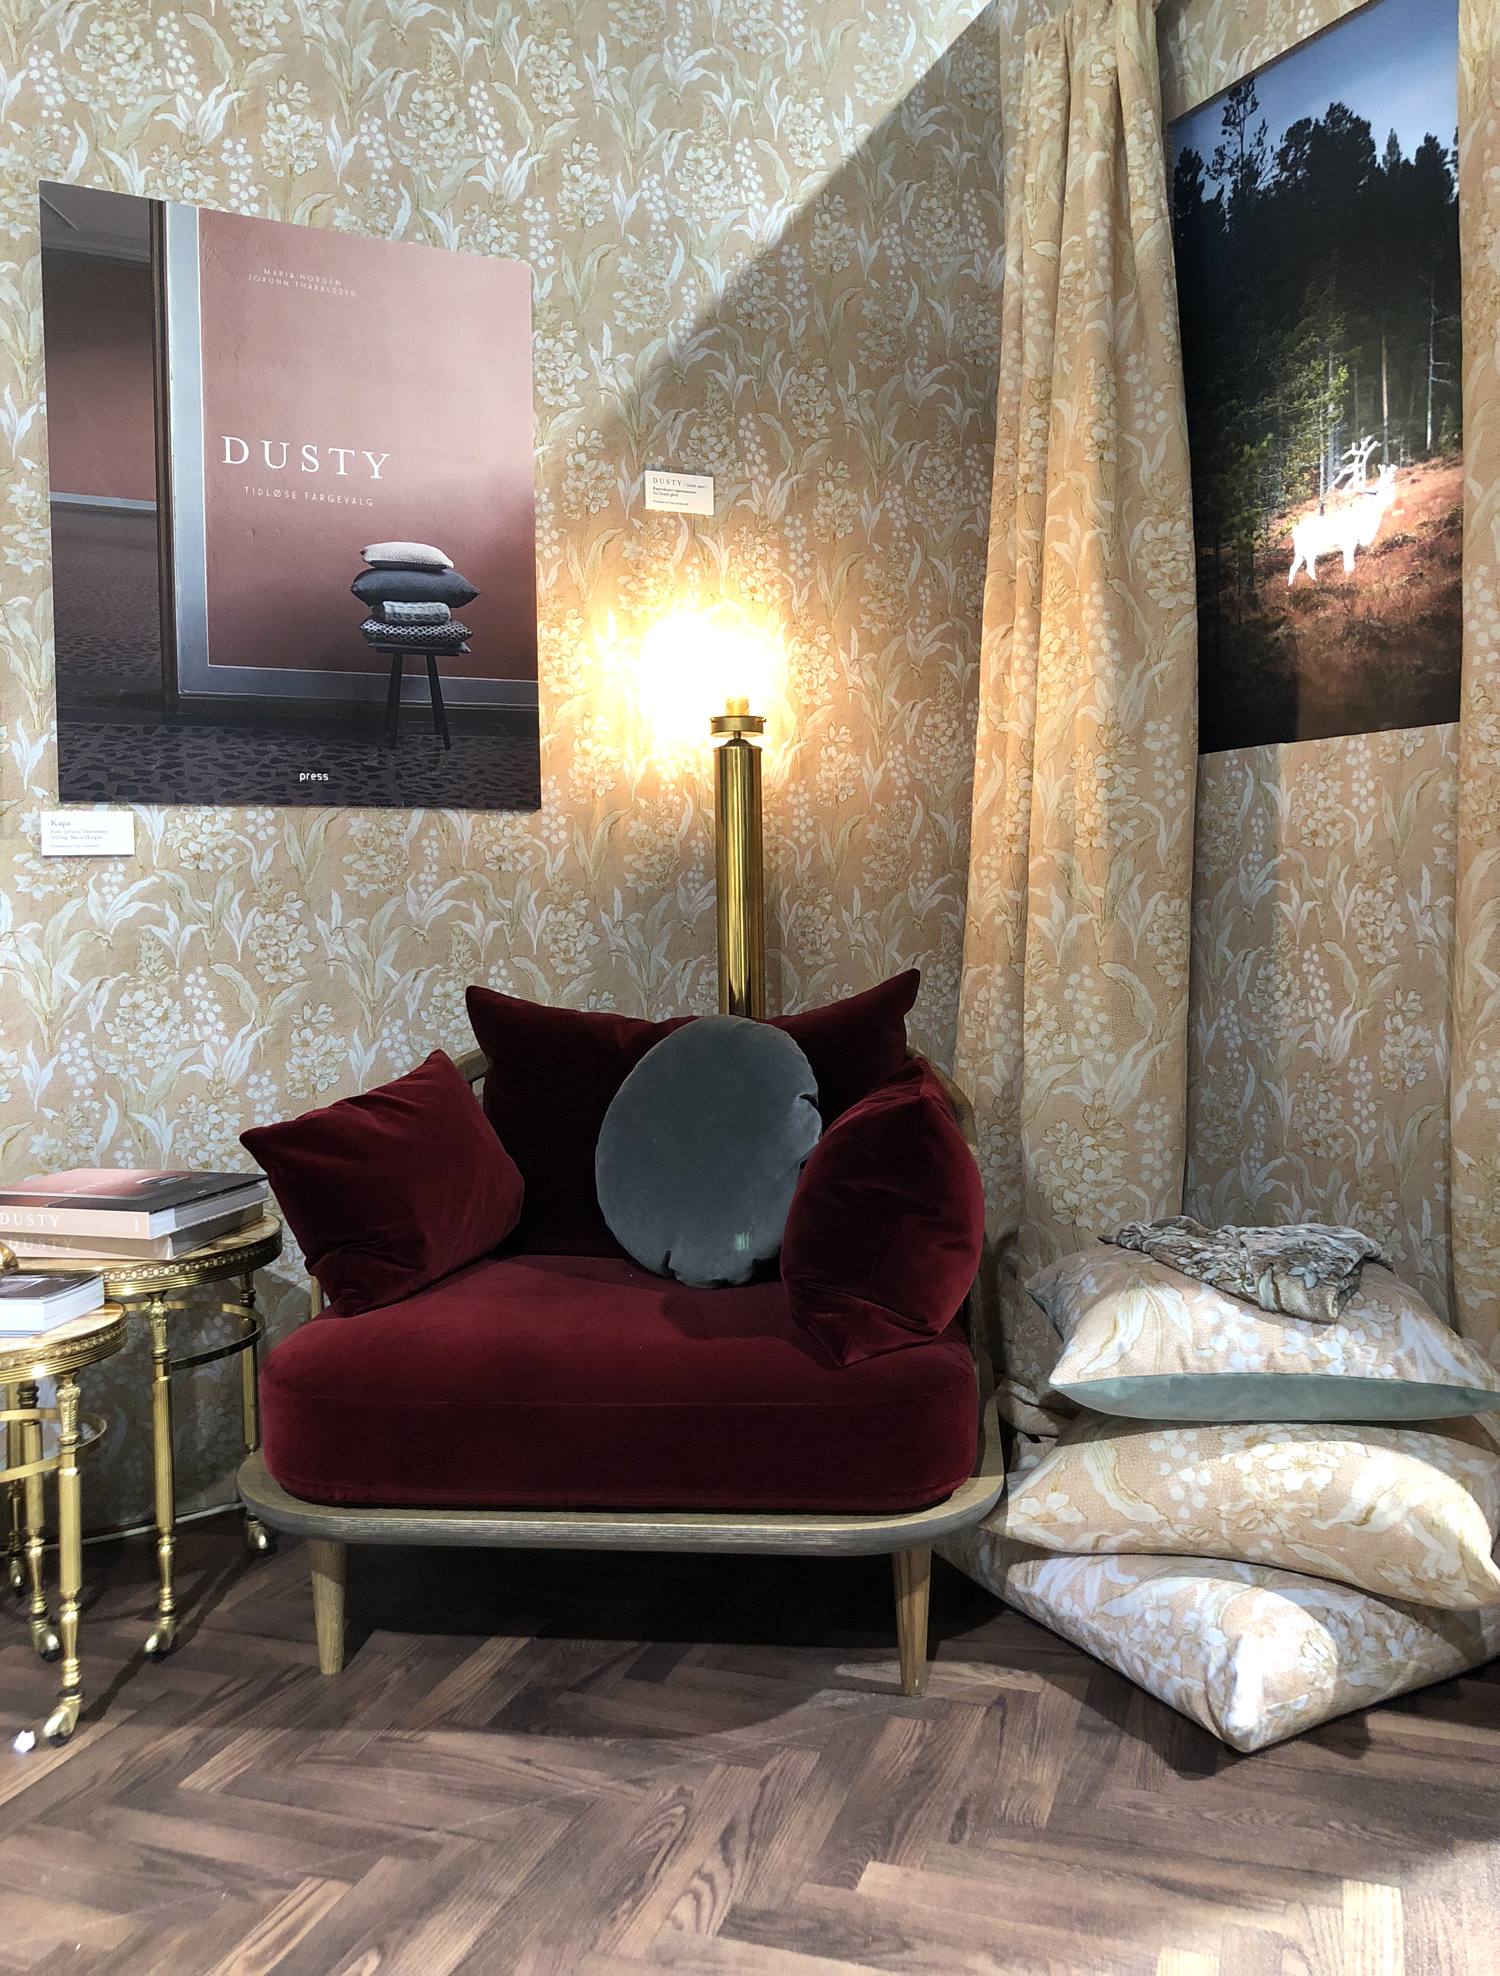 Oslo Design Fair trender 2018 dusty